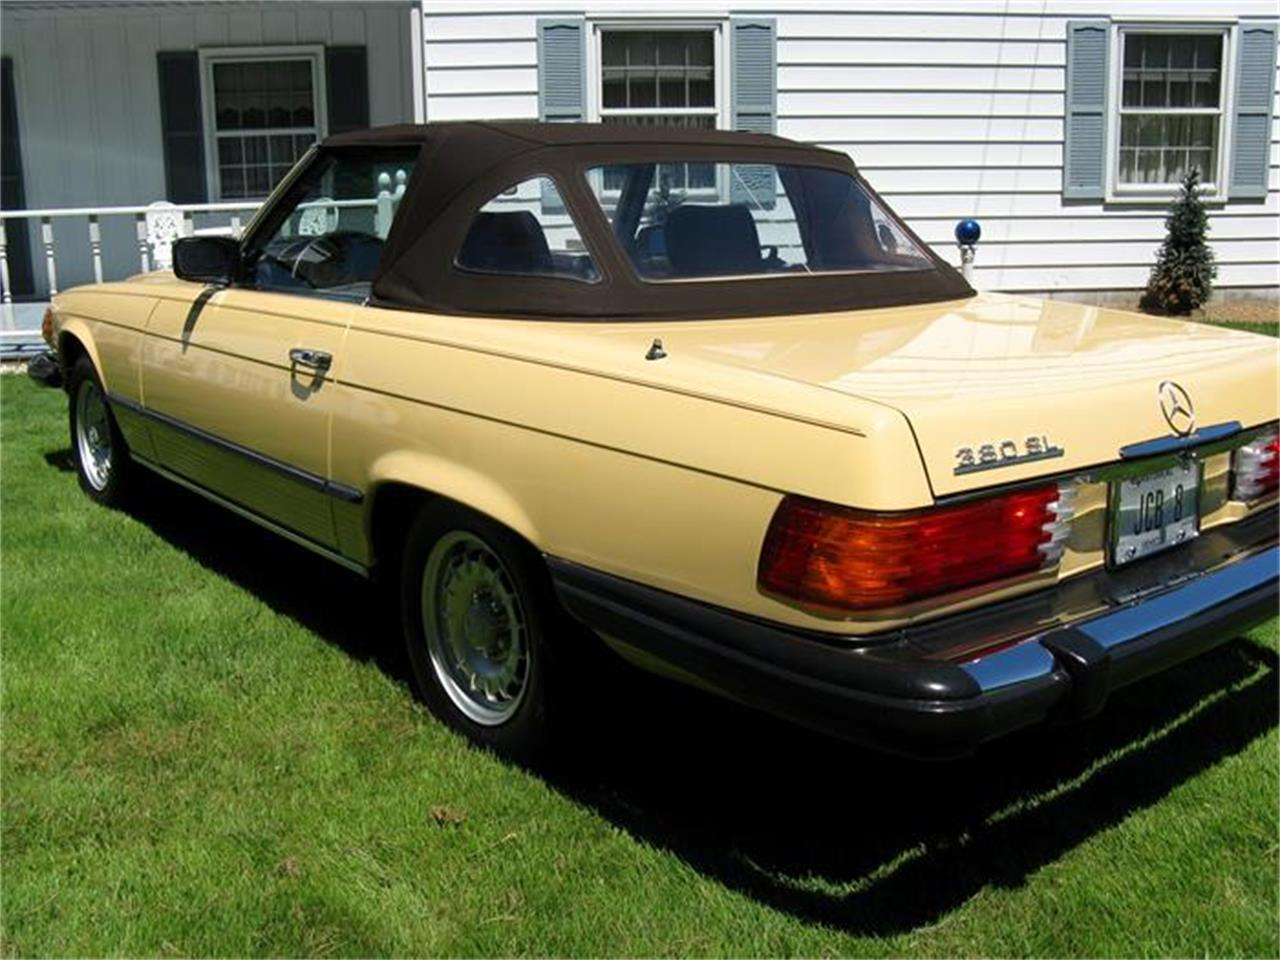 Large Picture of 1982 Mercedes-Benz 380SL located in Shaker Heights Ohio - $29,900.00 Offered by Affordable Classic Motorcars - BS6W